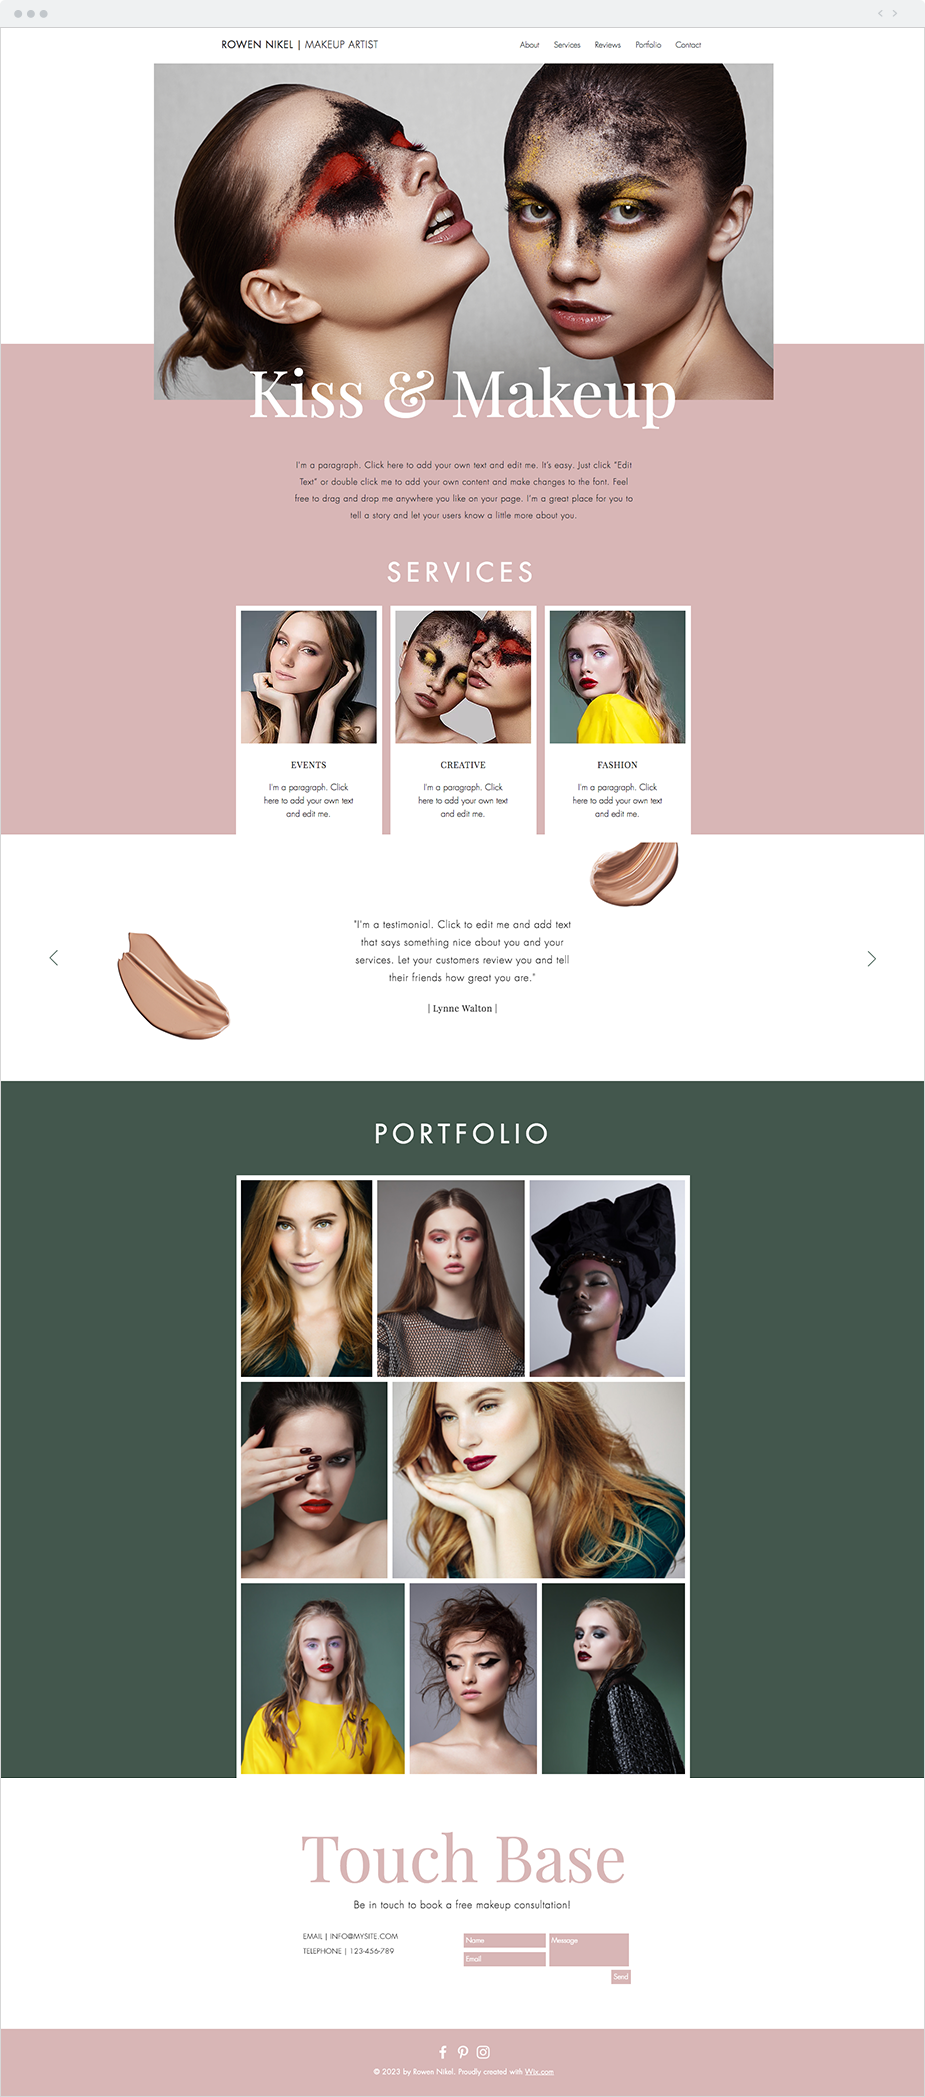 The Make Up Artist Website Template